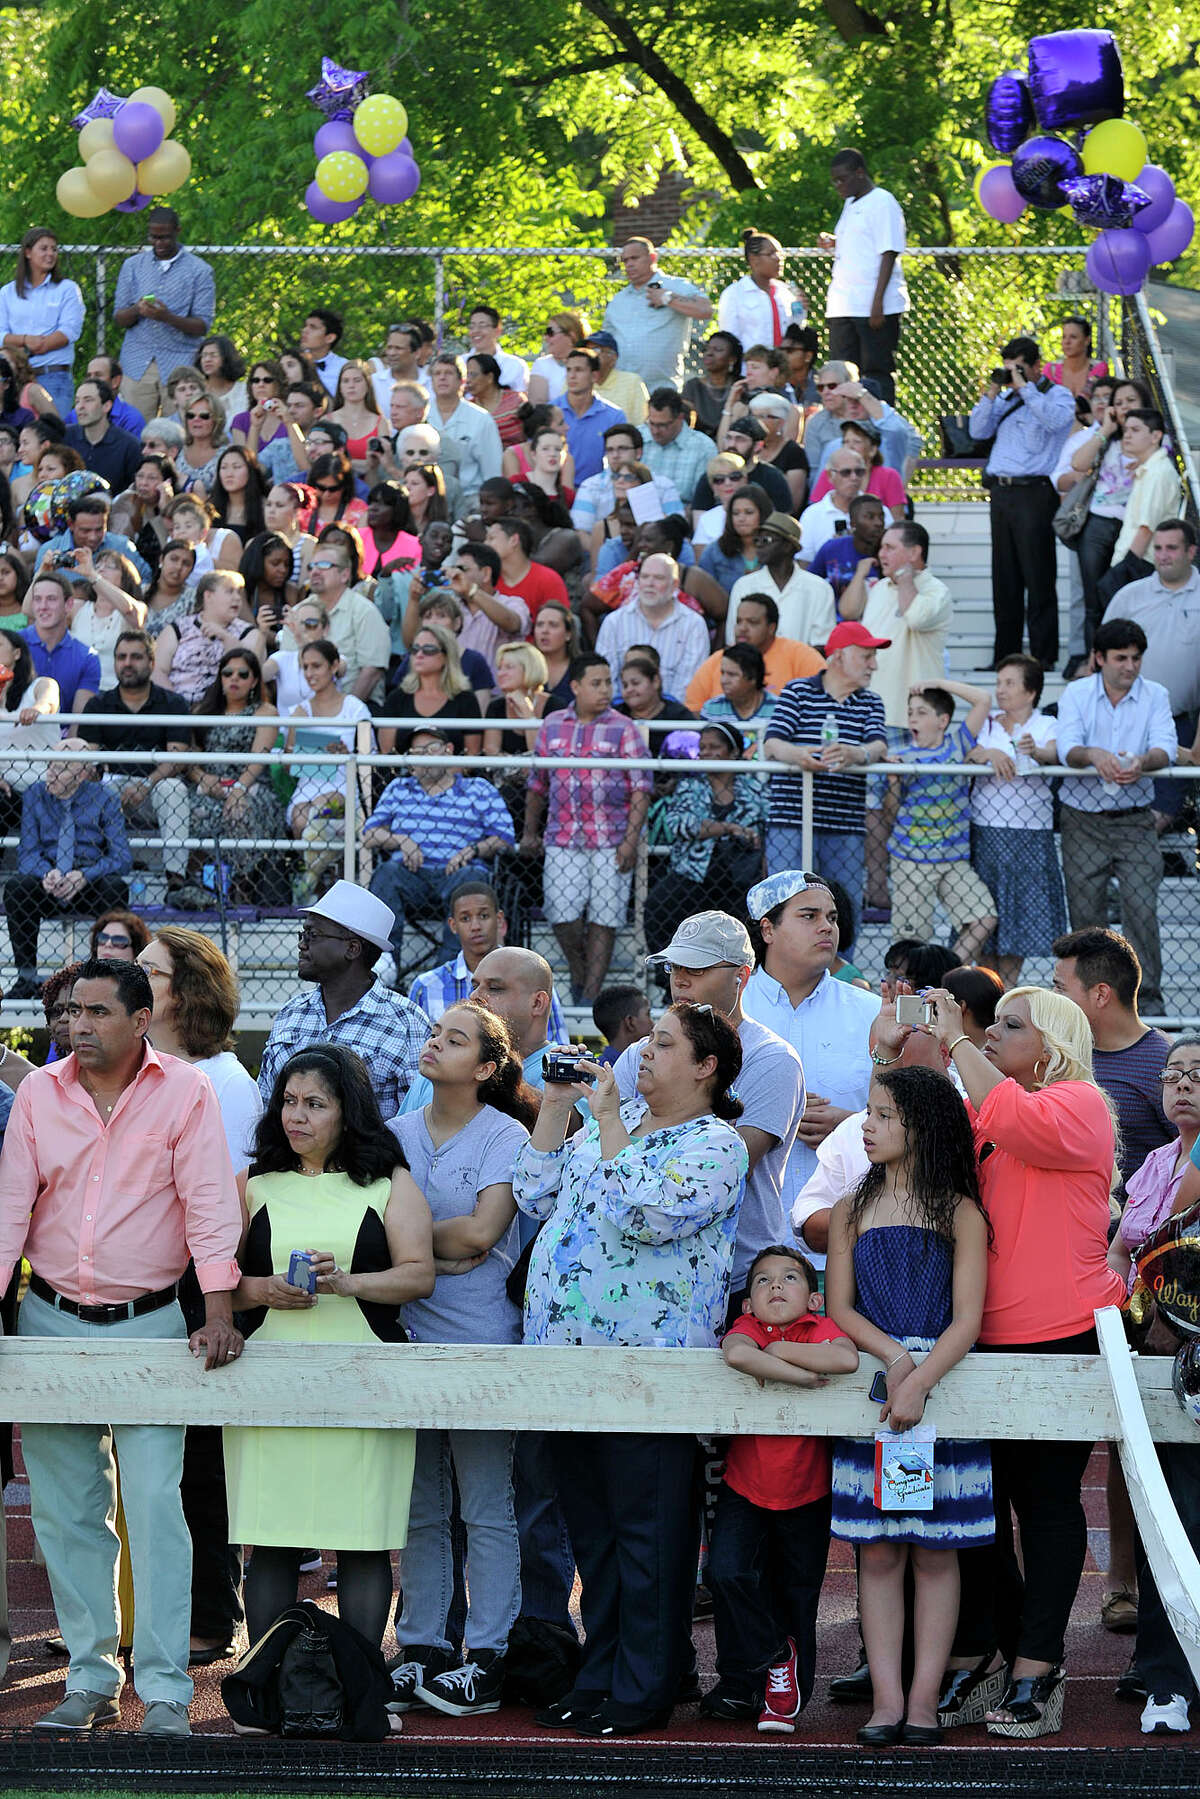 Scenes from the Westhill graduation ceremony at Westhill High School in Stamford, Conn., on Thursday, June 19, 2014.